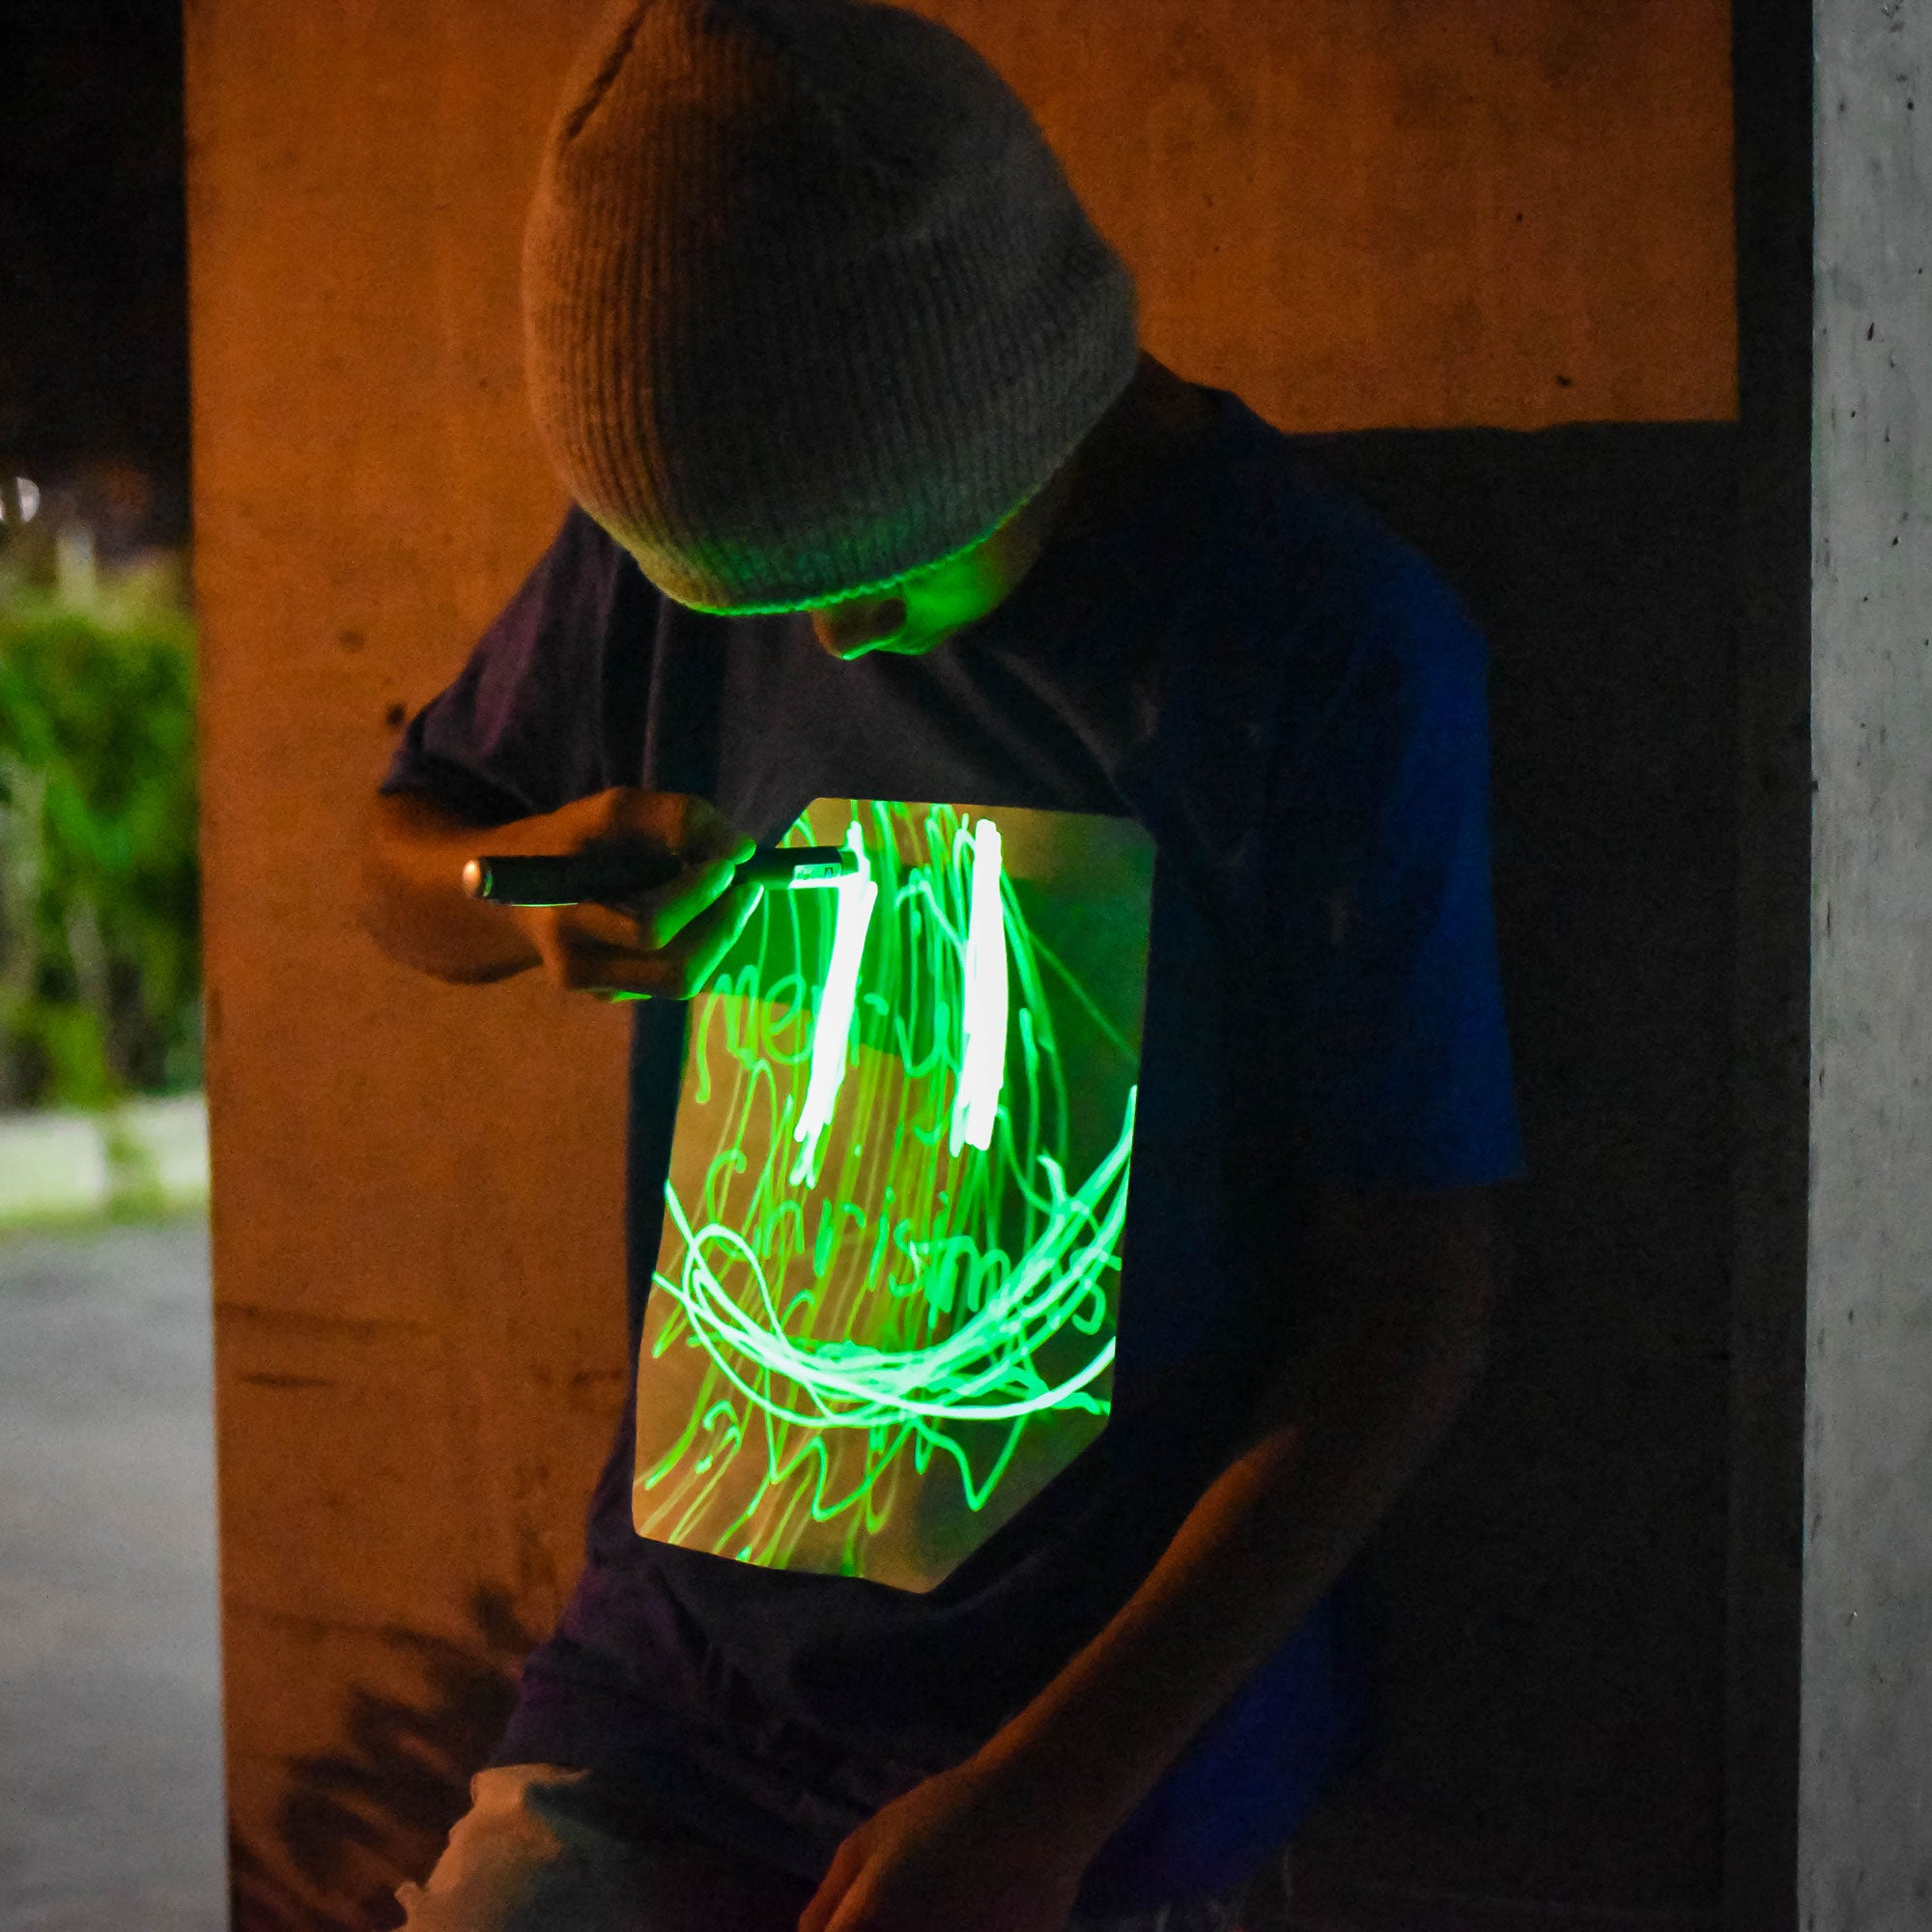 Kids Interactive Glow In The Dark T-shirt in Blue and Green Glow